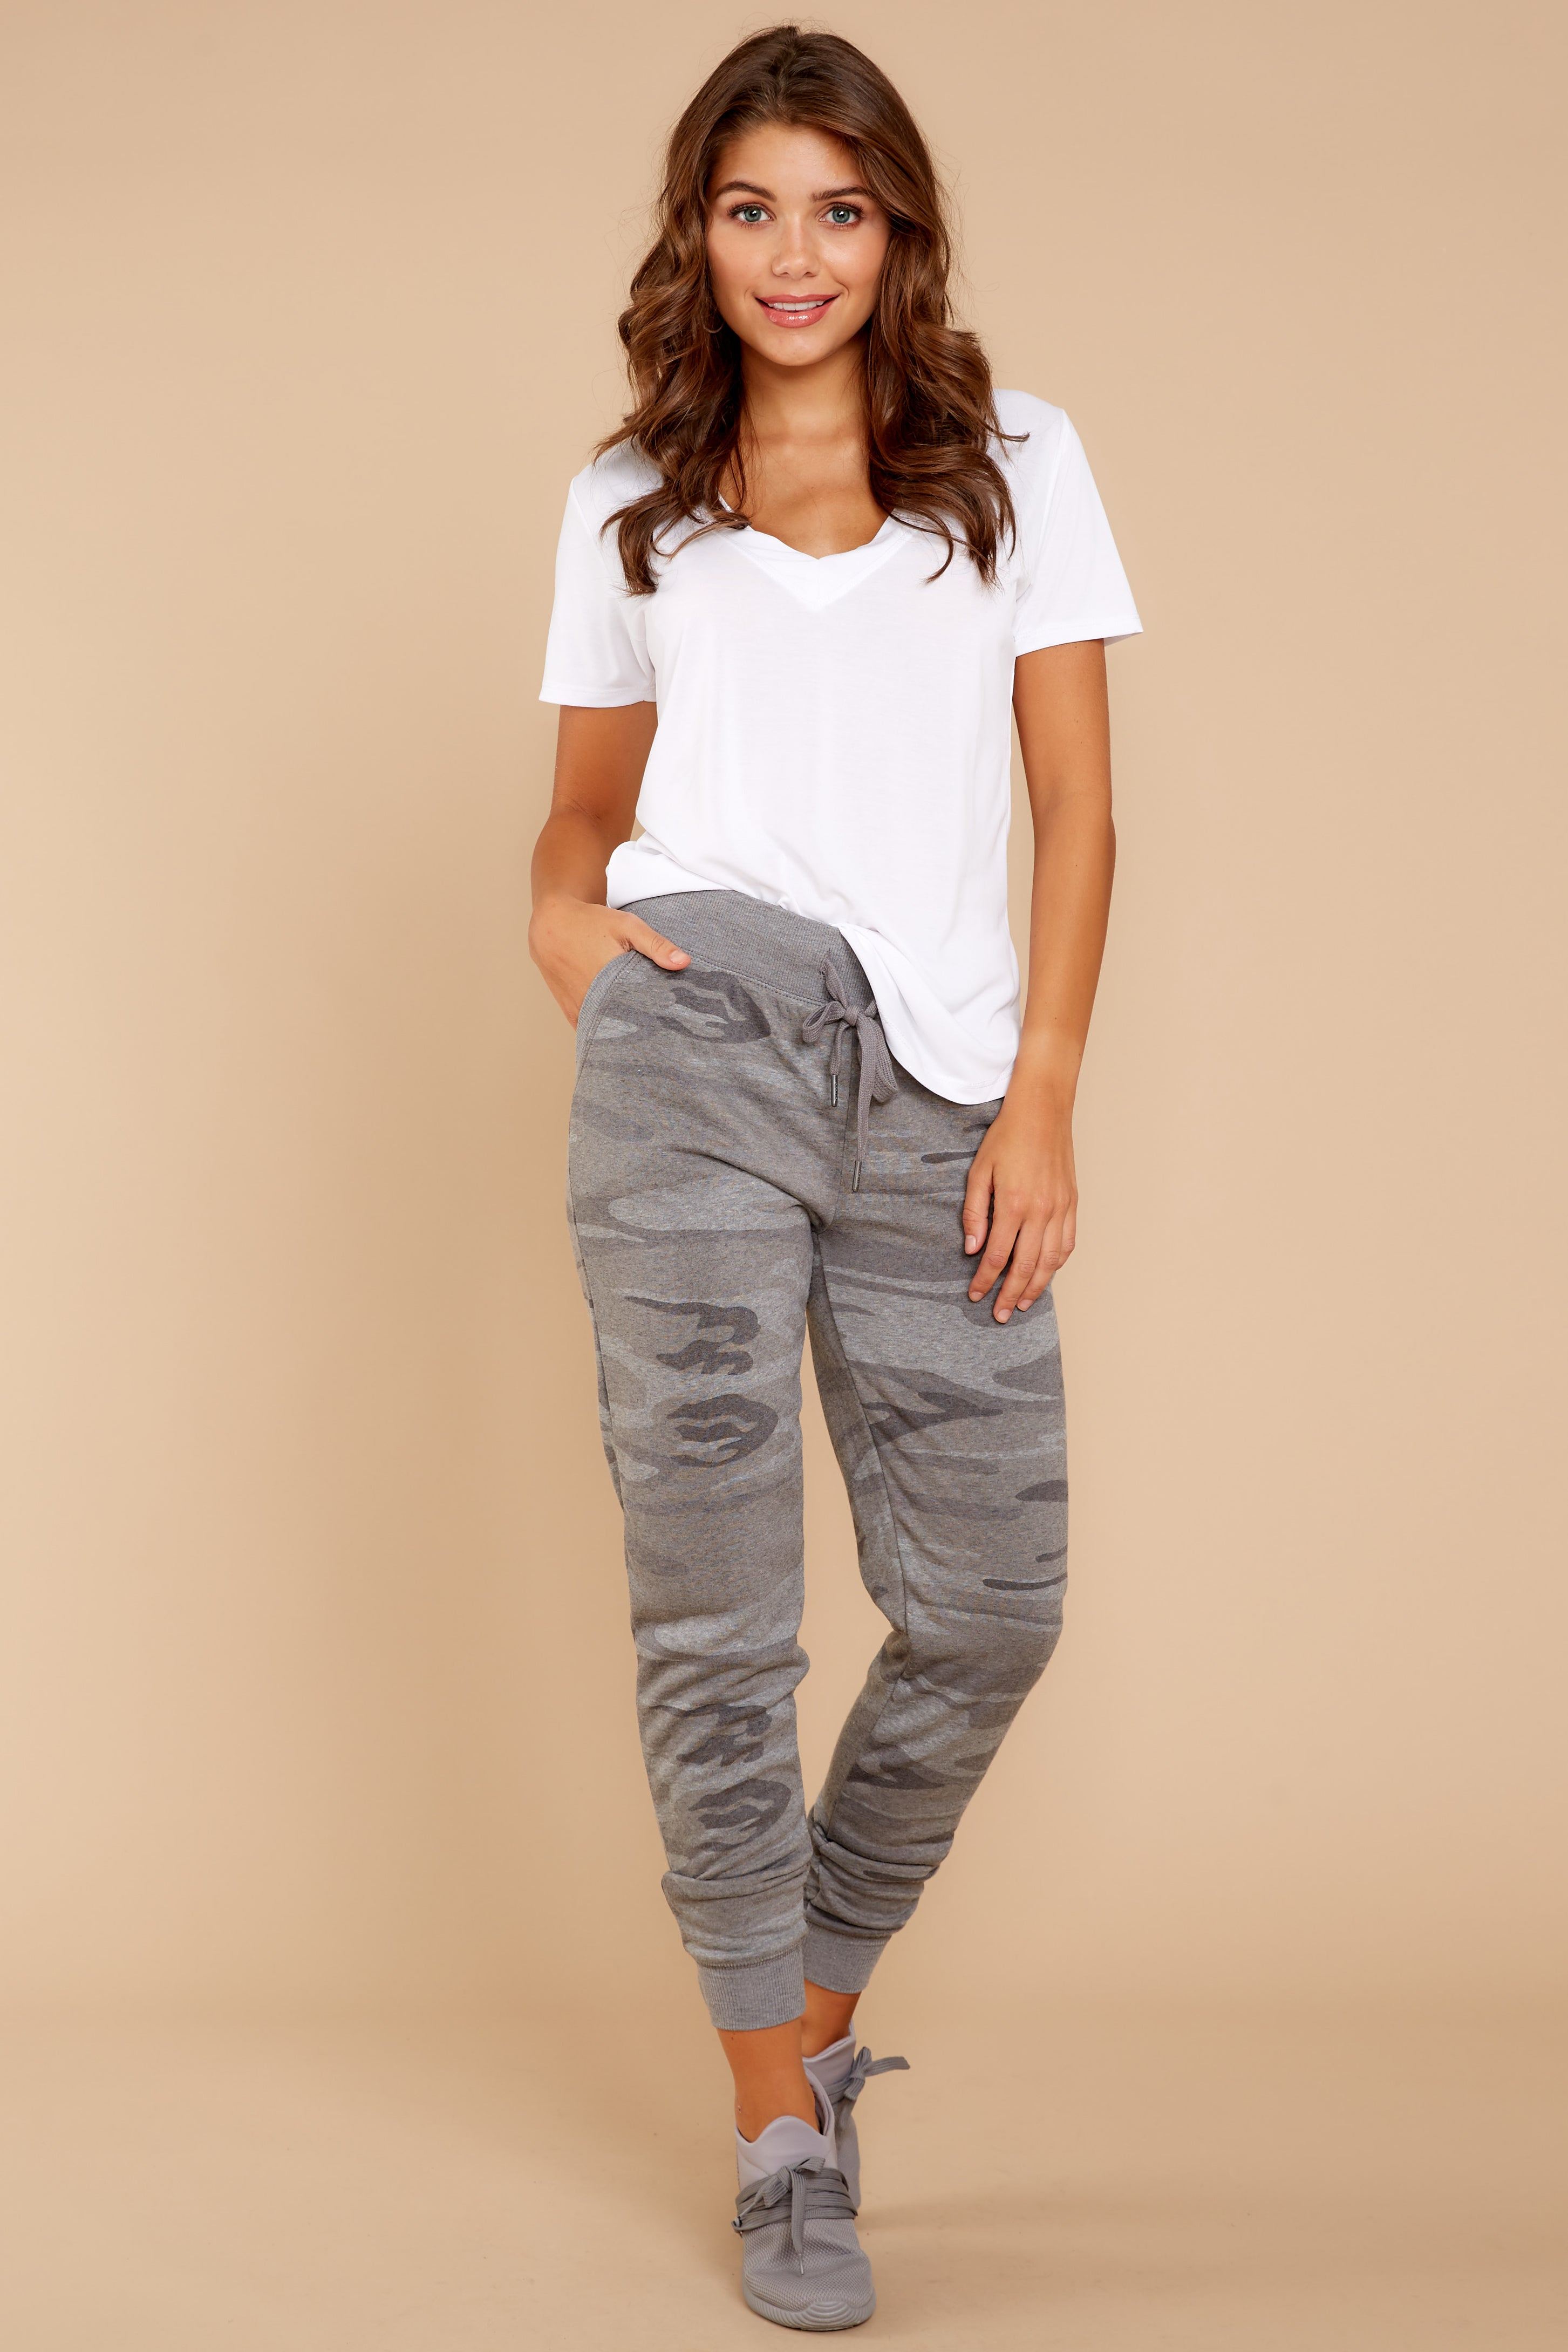 5 Loft Fleece Camo Jogger Pants In Camo Dark Grey at reddressboutique.com